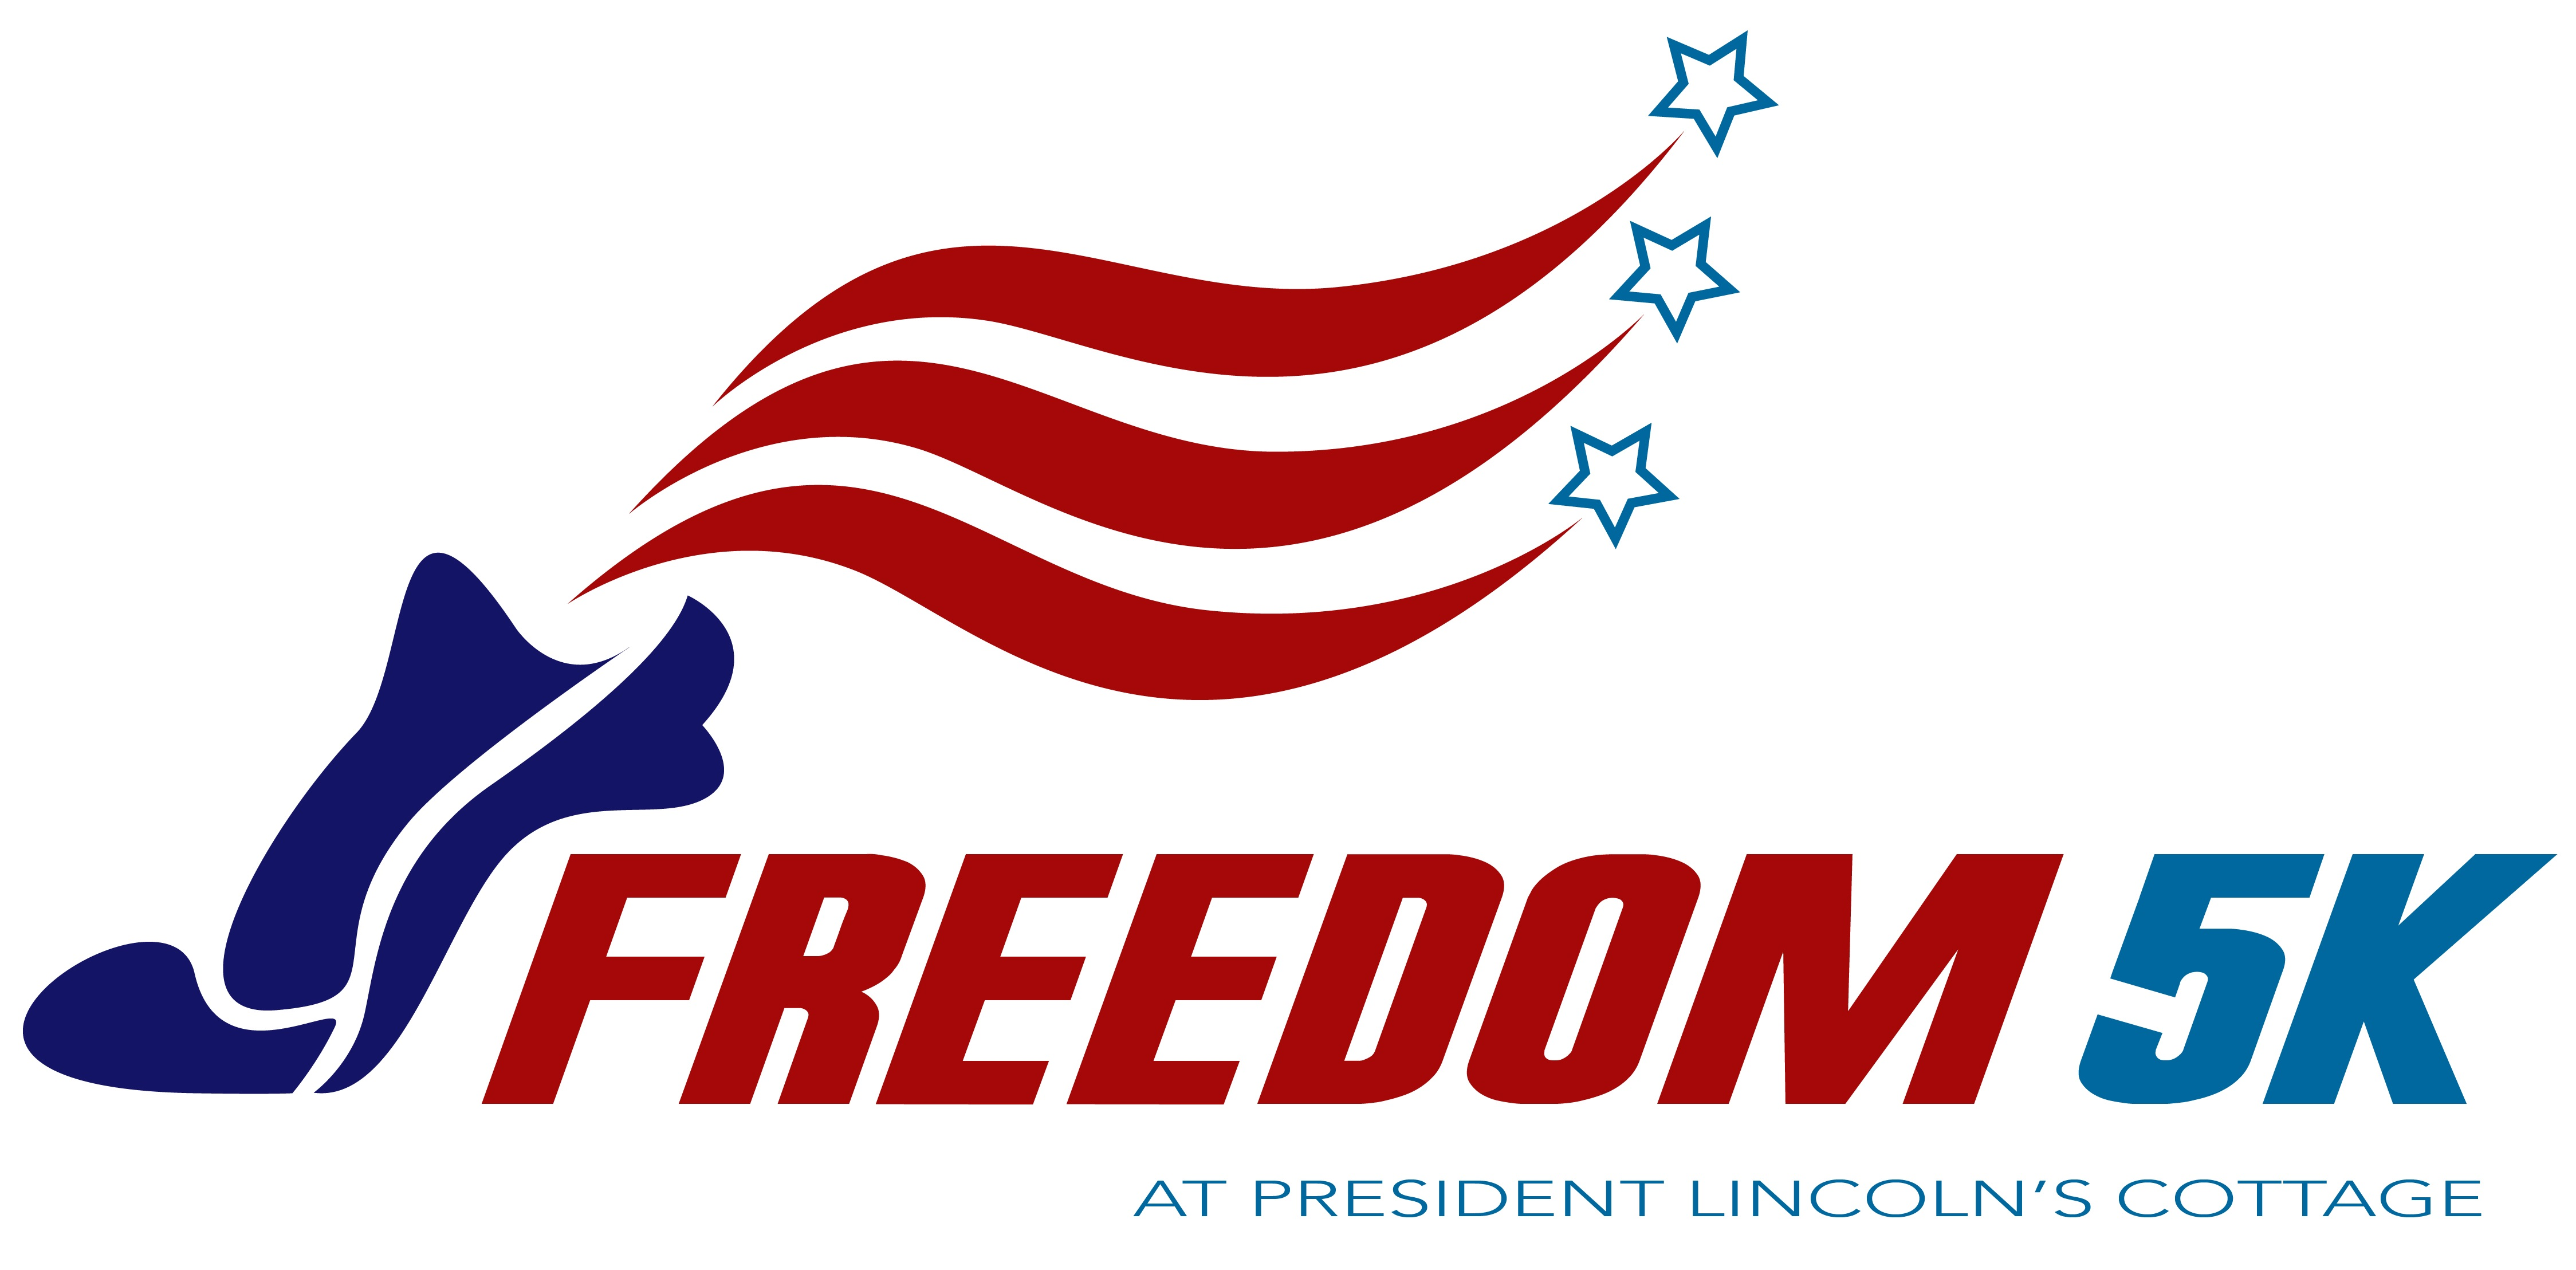 Register for the 2017 Freedom 5k at President Lincoln's Cottage